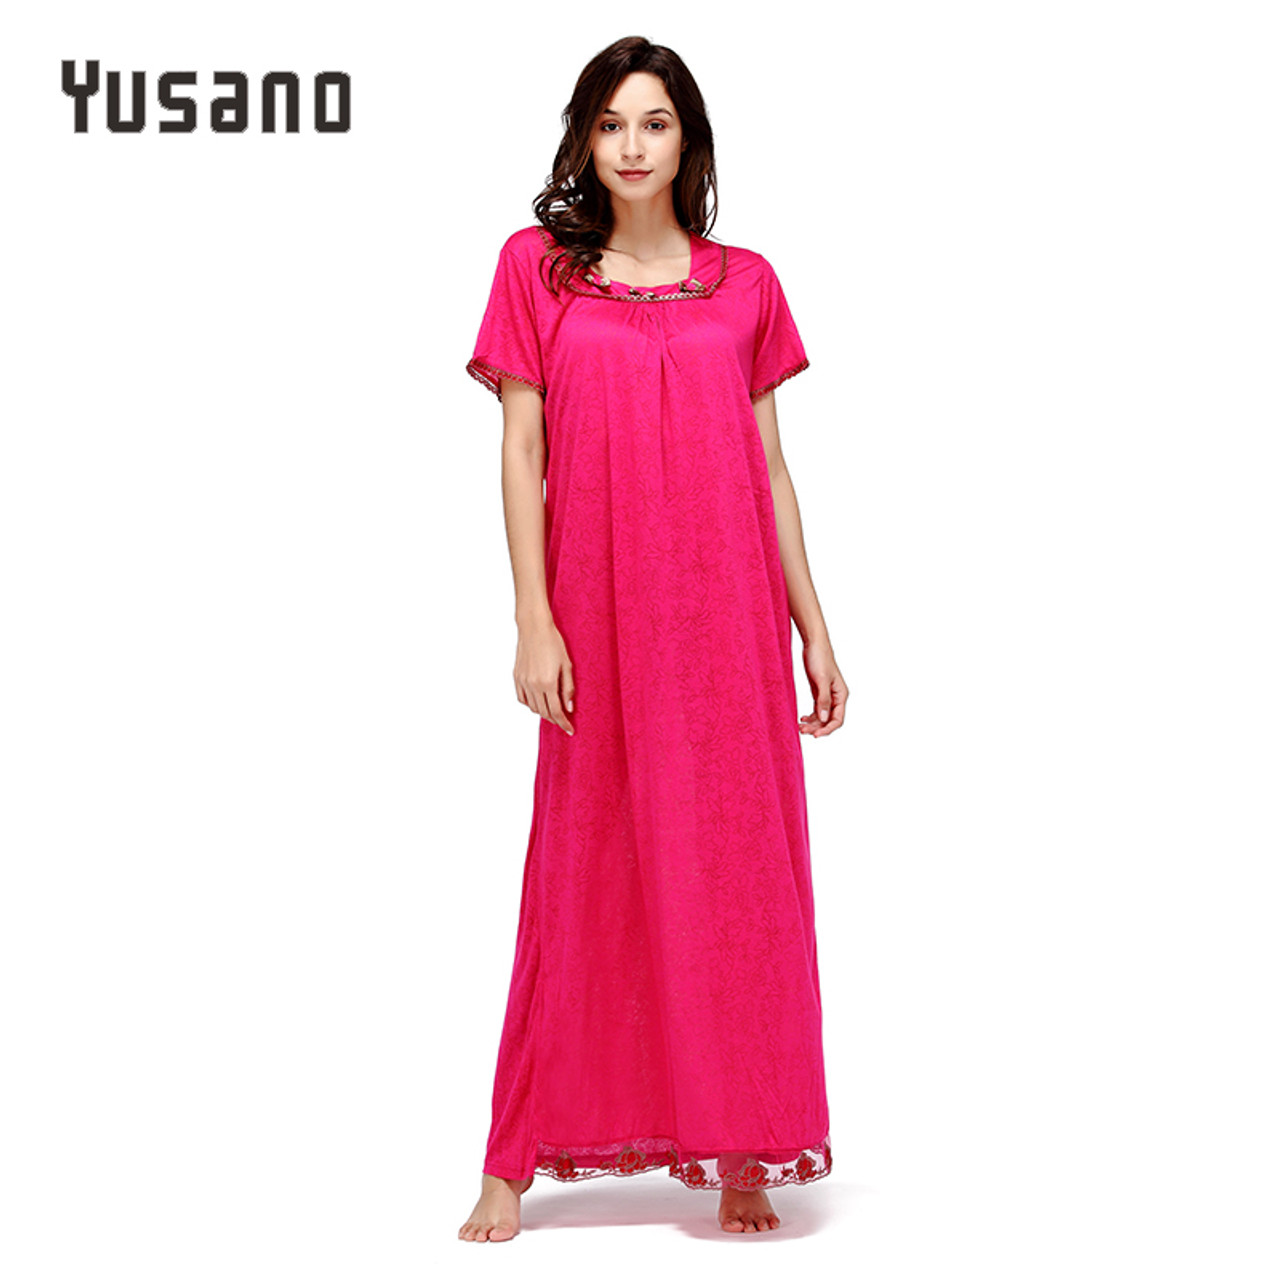 Yusano Women Long Nightgown Cotton Long Nightdress Loose Sleep Dress Casual  Home Clothe Nightshirt Lace Plus ... 731335aad